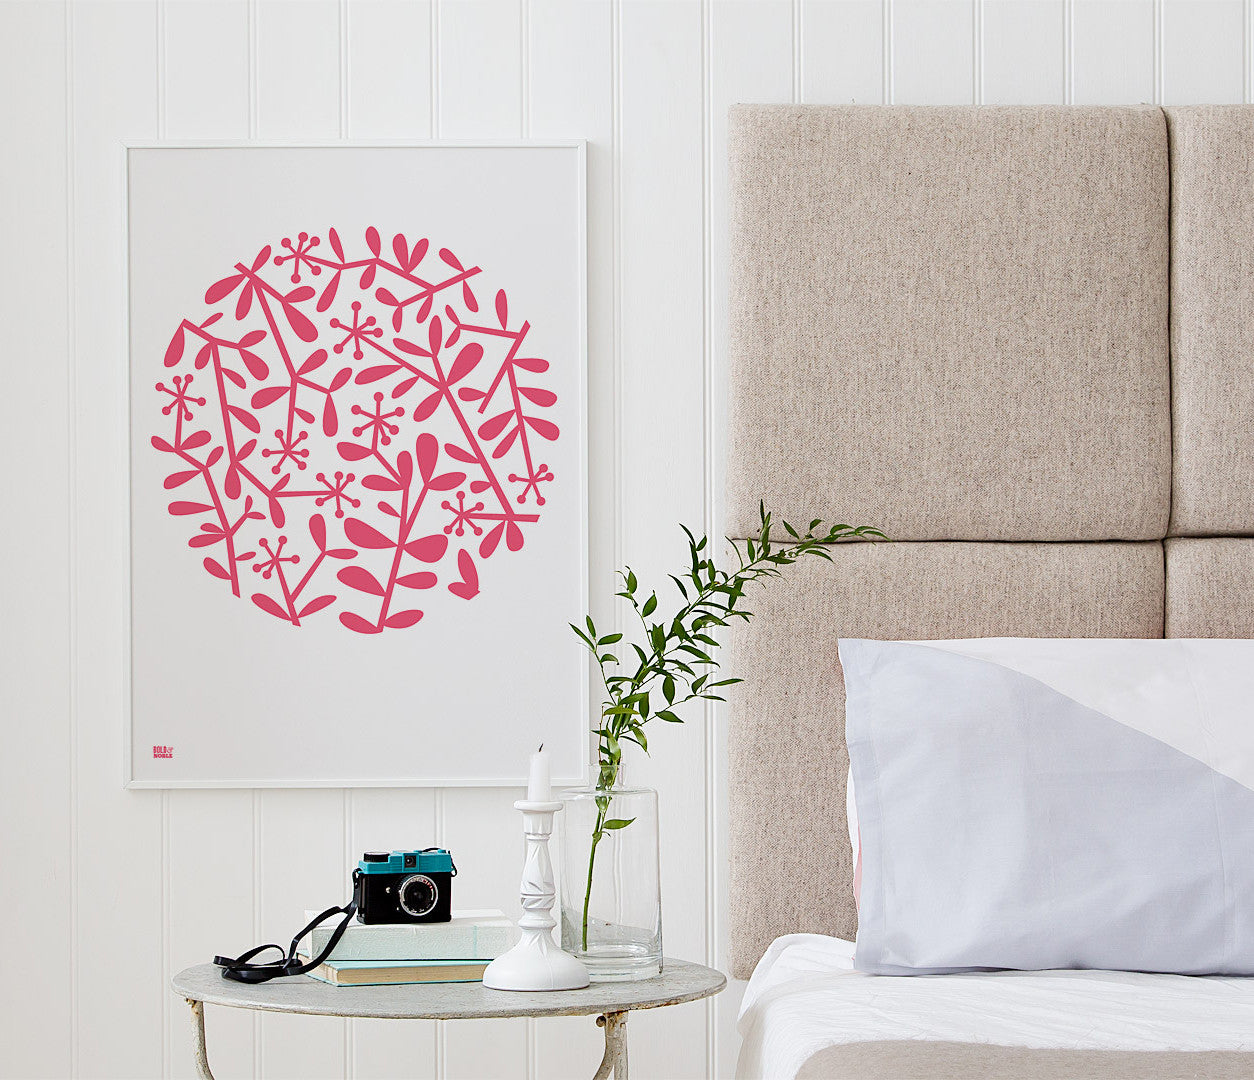 Wall Art ideas: Economical Screen Prints, Flora Leaf Pattern in Raspberry Sorbet